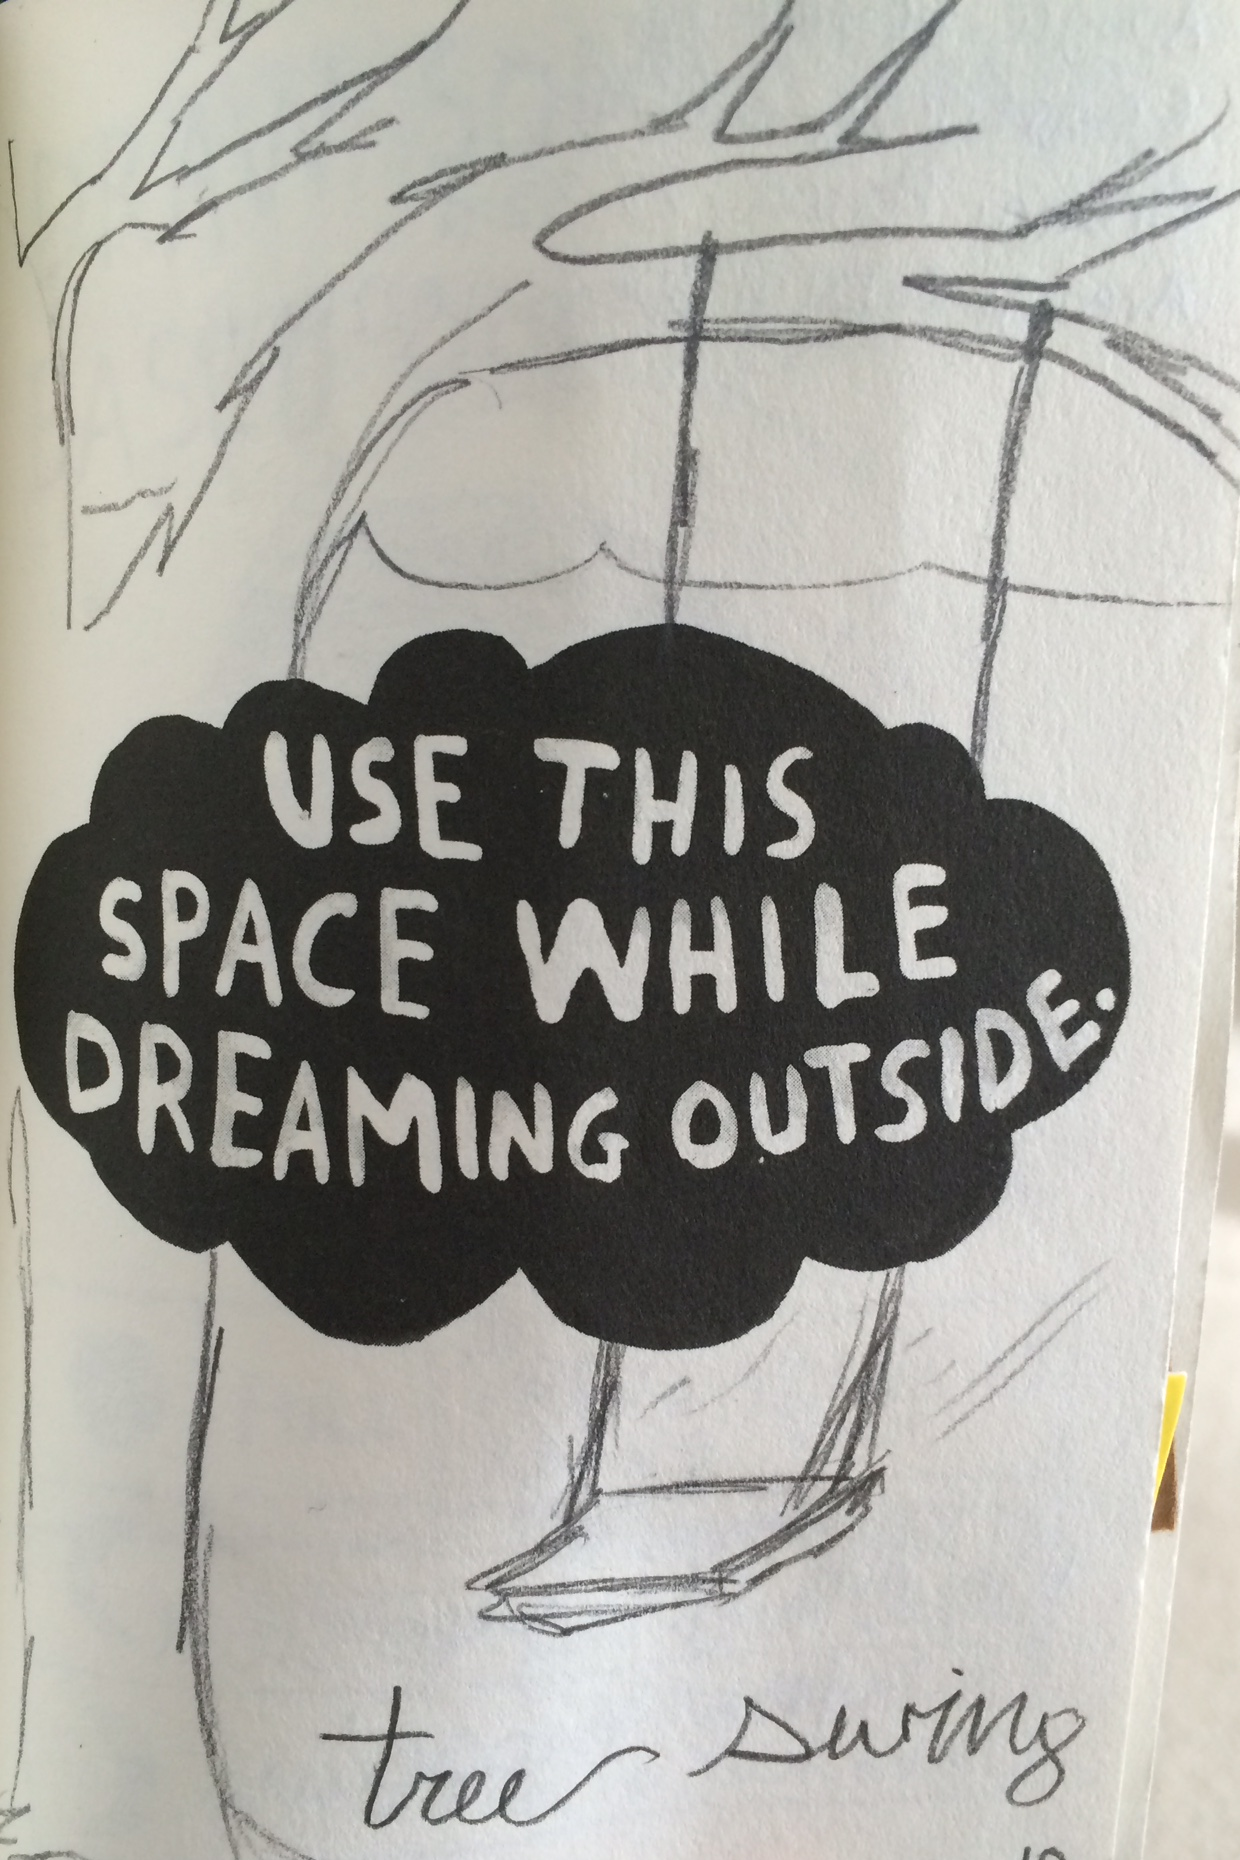 Use this space while dreaming outside.